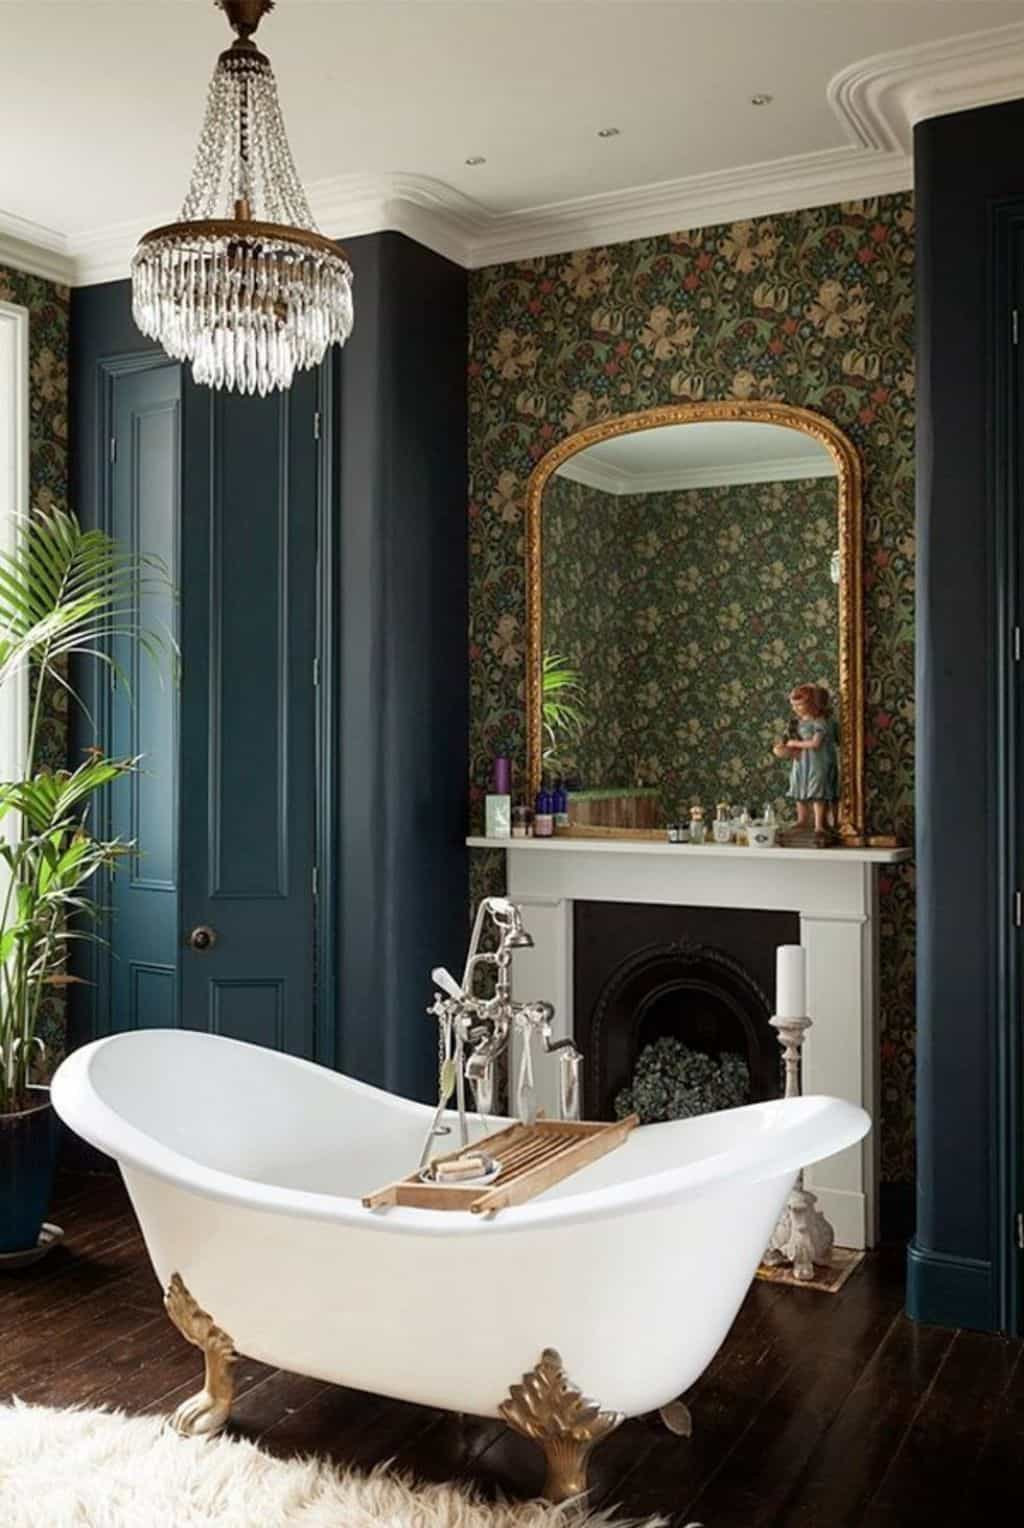 Amazing Bathroom With Wallpaper And Chandelier Over White Clawfoot 1024x1528